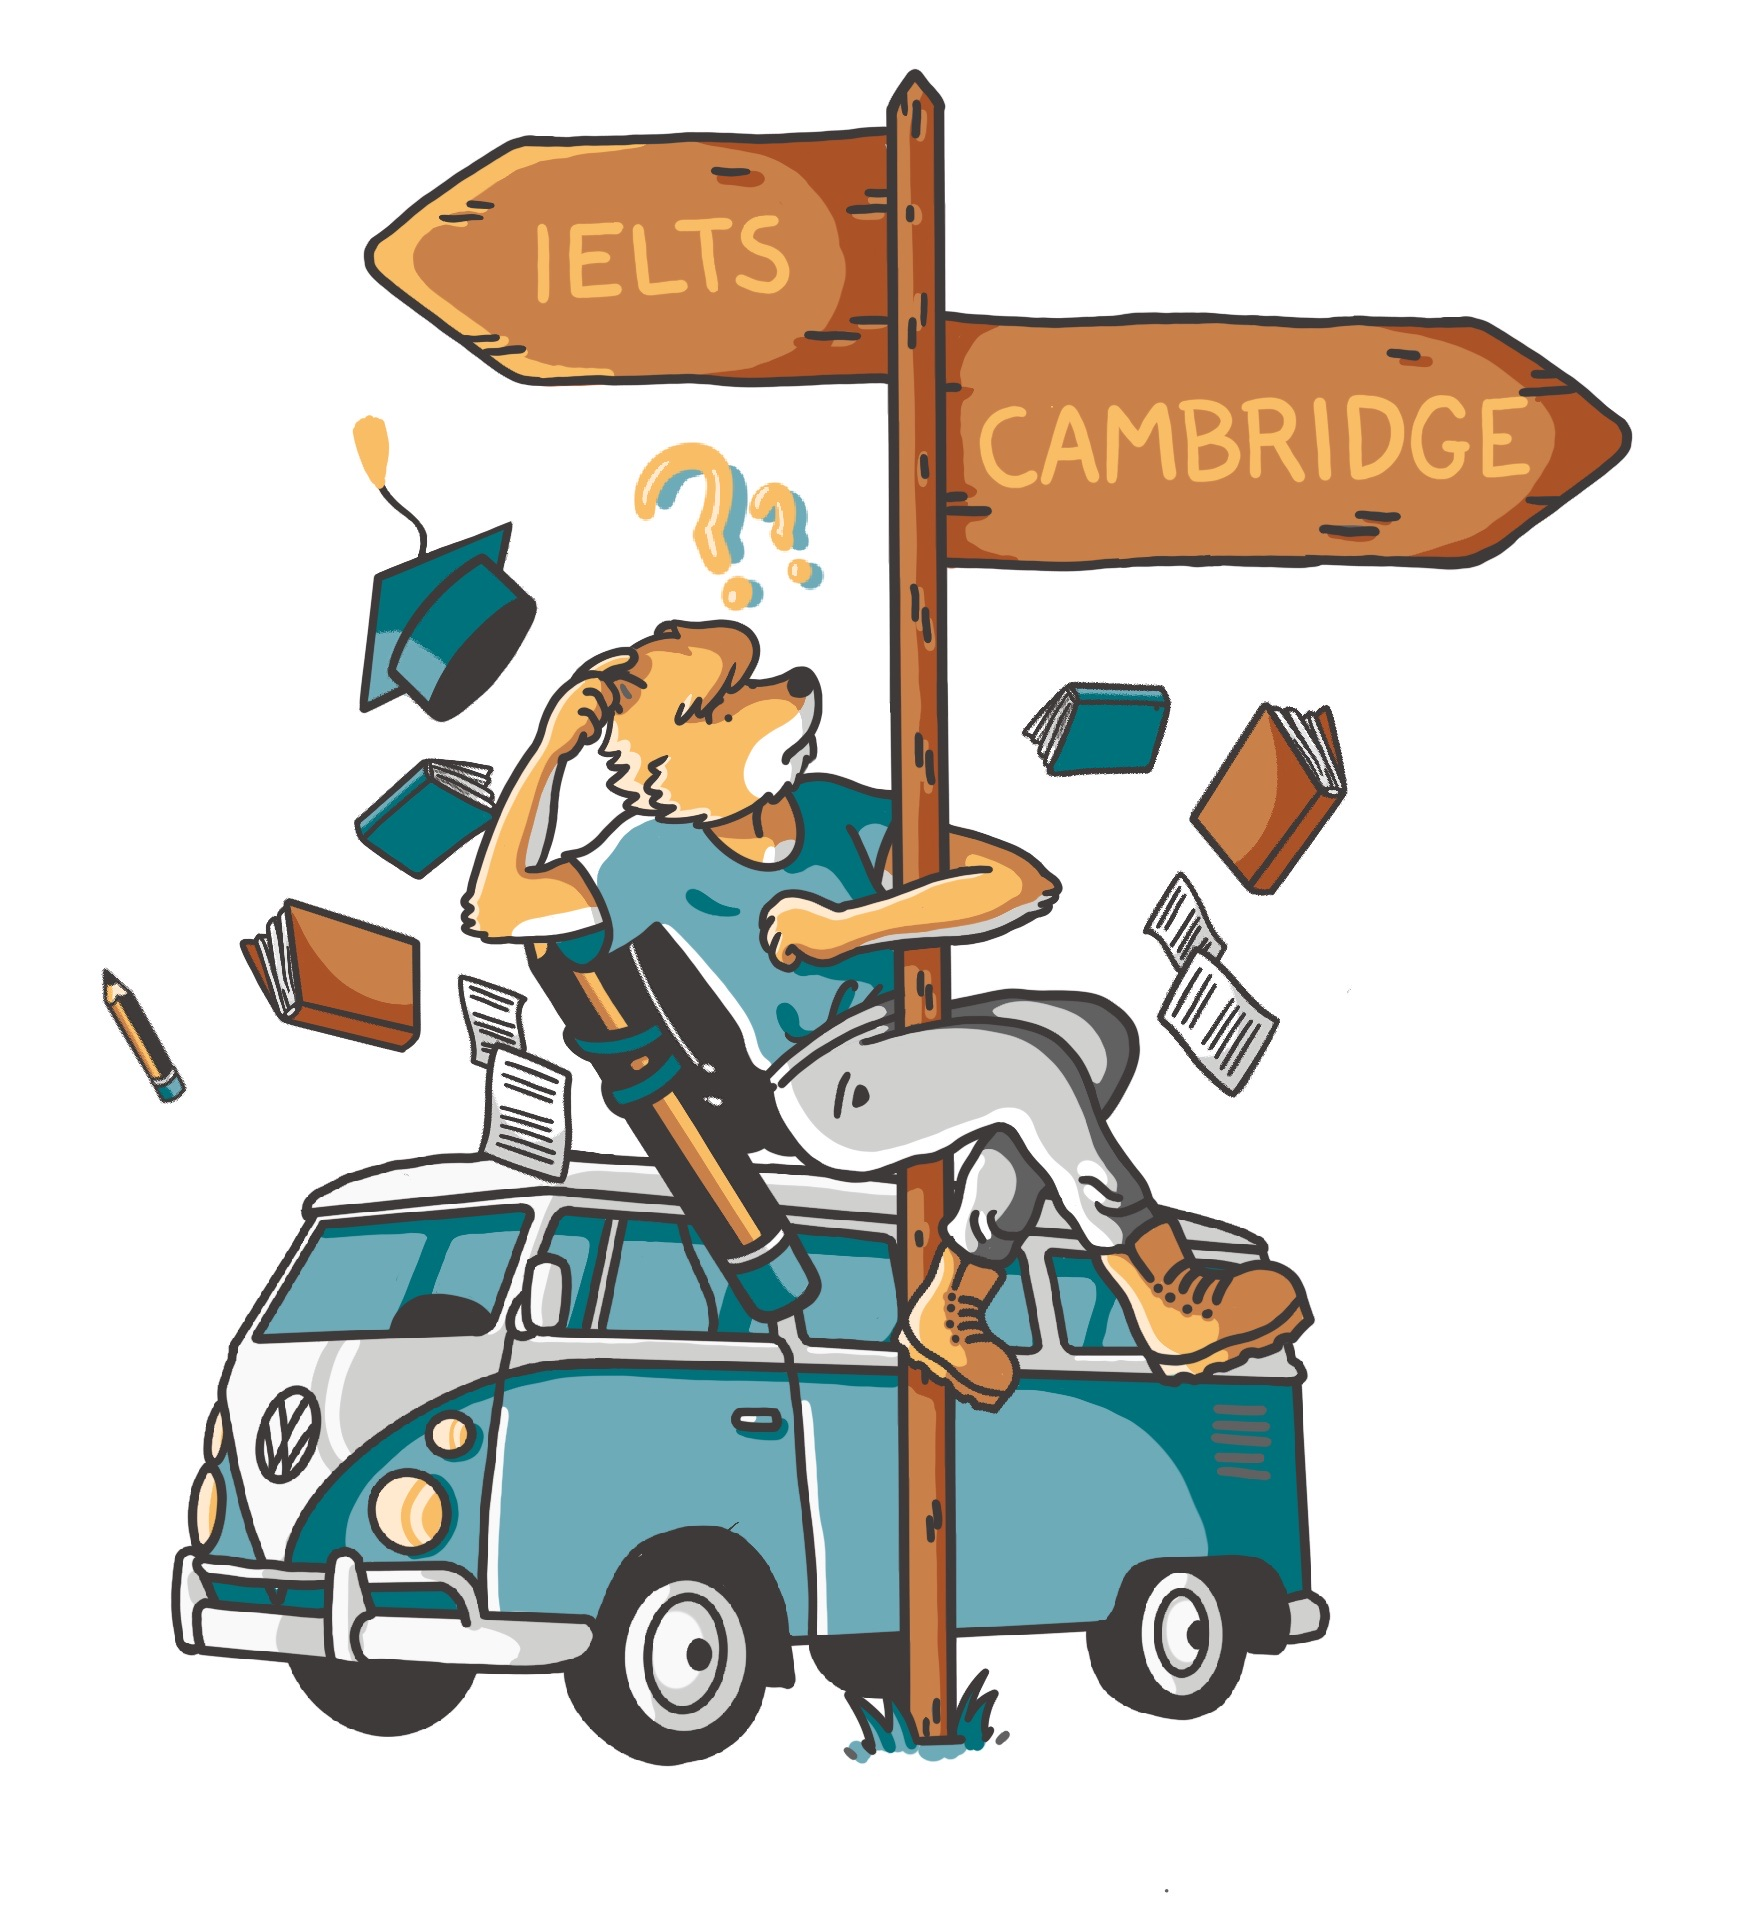 infografia ielts vs cambrige